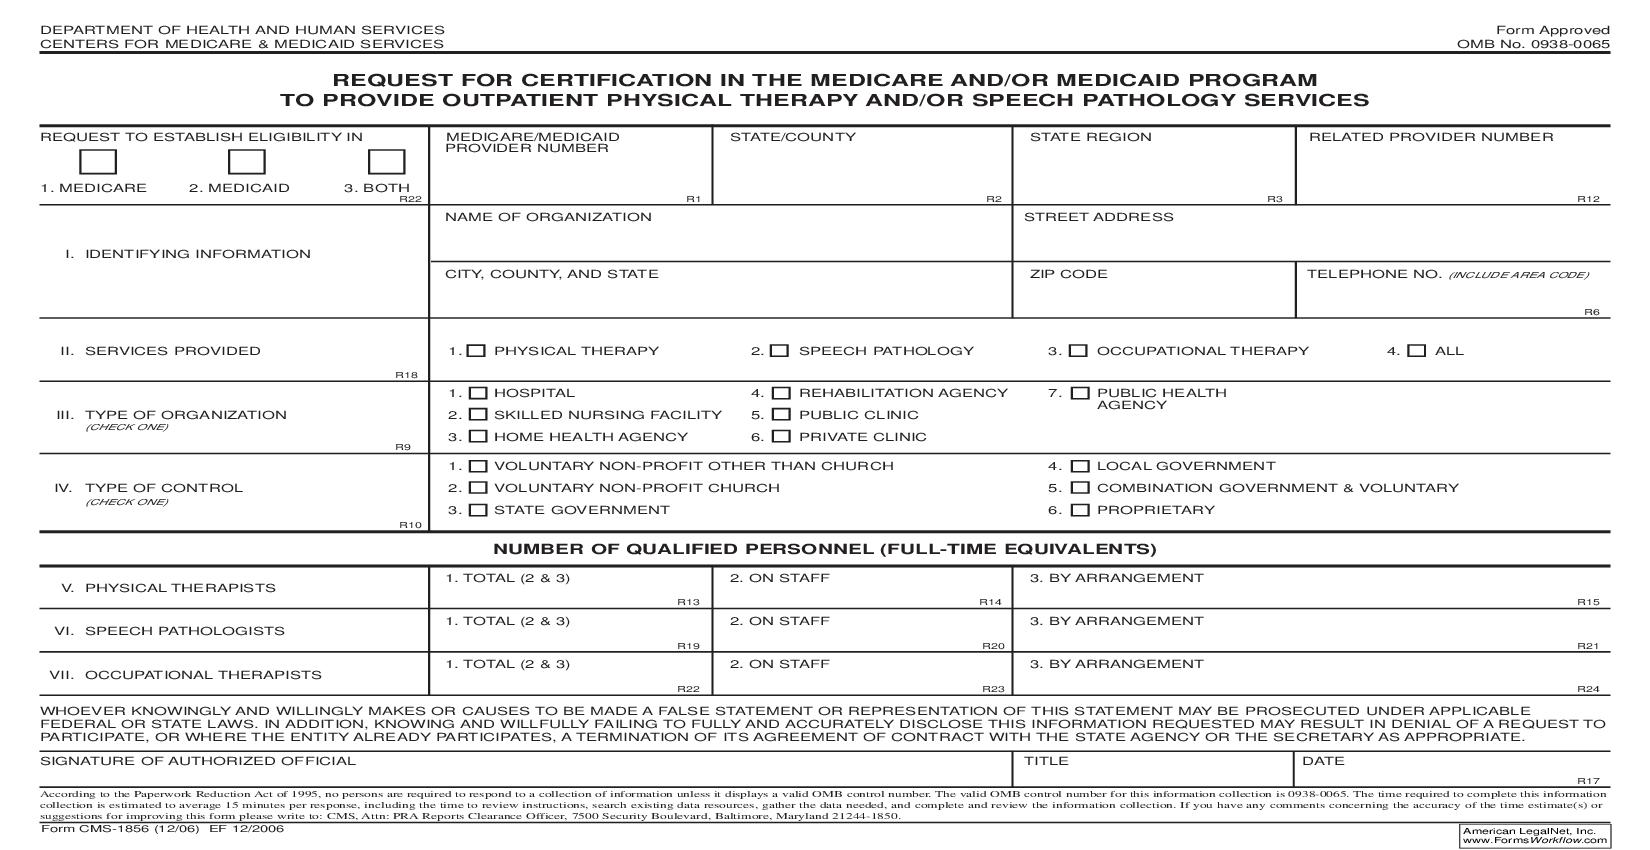 Request For Certification In The Medicare And-Or Medicaid Program To Provide Outpatient Physical Therapy {CMS-1856}   Pdf Fpdf Doc Docx   Official Federal Forms